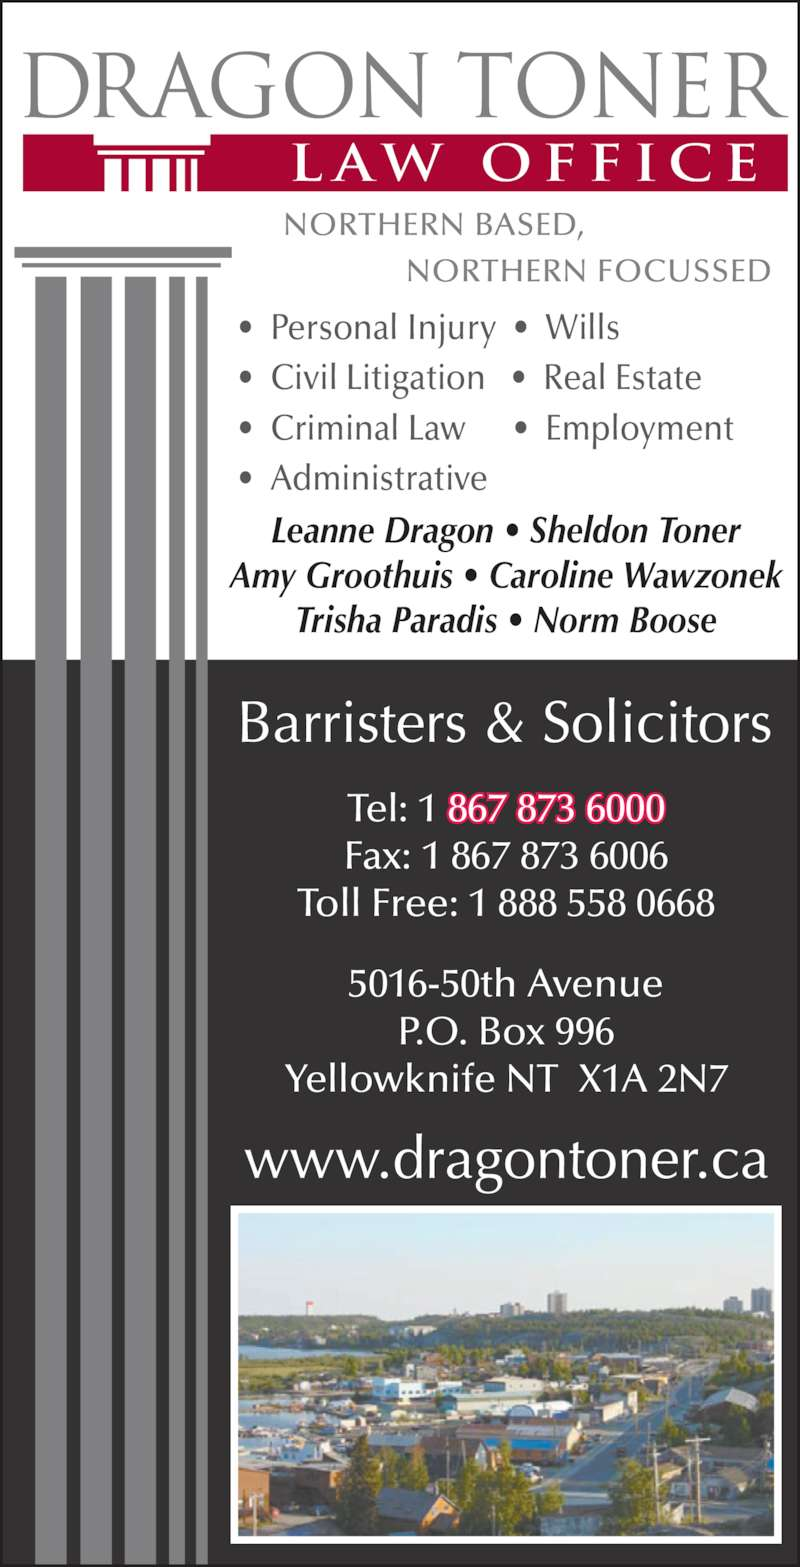 Dragon Toner Law Office (867-873-6000) - Display Ad - •  Personal Injury  •  Wills   •  Civil Litigation   •  Real Estate   •  Criminal Law      •  Employment   •  Administrative Leanne Dragon • Sheldon Toner Amy Groothuis • Caroline Wawzonek Trisha Paradis • Norm Boose 5016-50th Avenue P.O. Box 996 Yellowknife NT  X1A 2N7 Tel: 1 867 873 6000 Fax: 1 867 873 6006 Toll Free: 1 888 558 0668